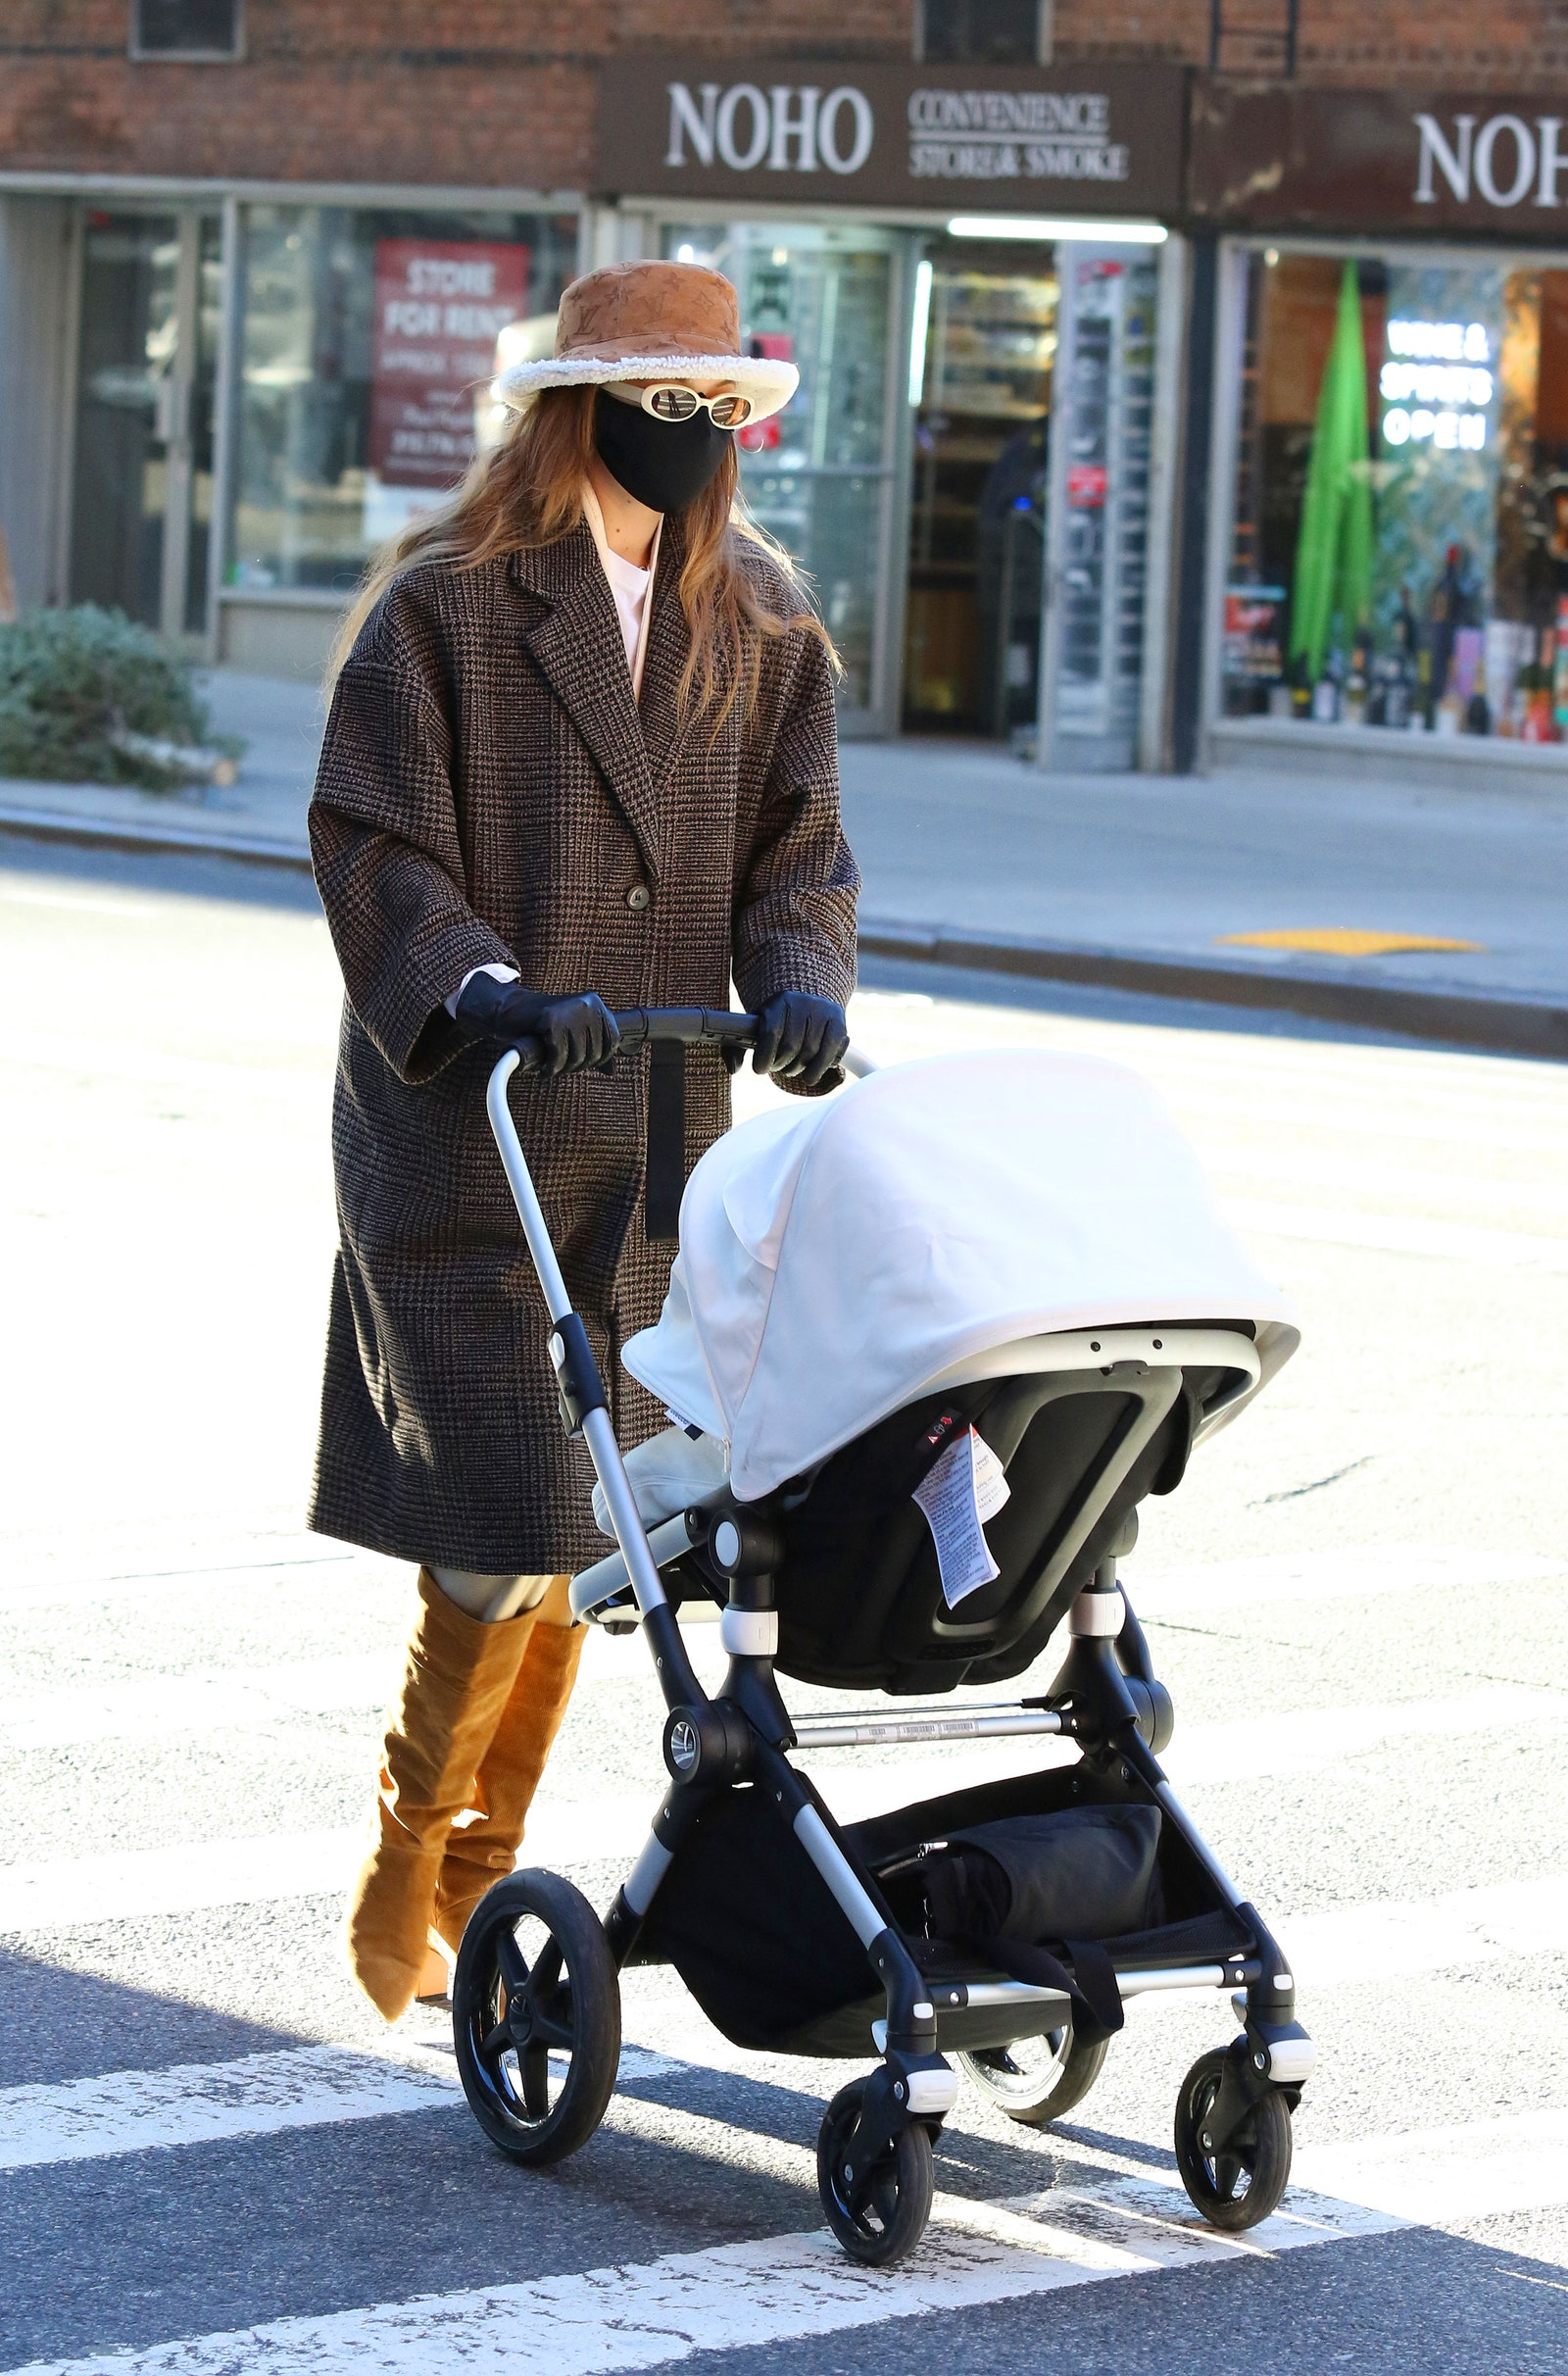 Gigi Hadid goes for a walk with her baby and a friend on January 10th 2020 in New York City New York.nbsp